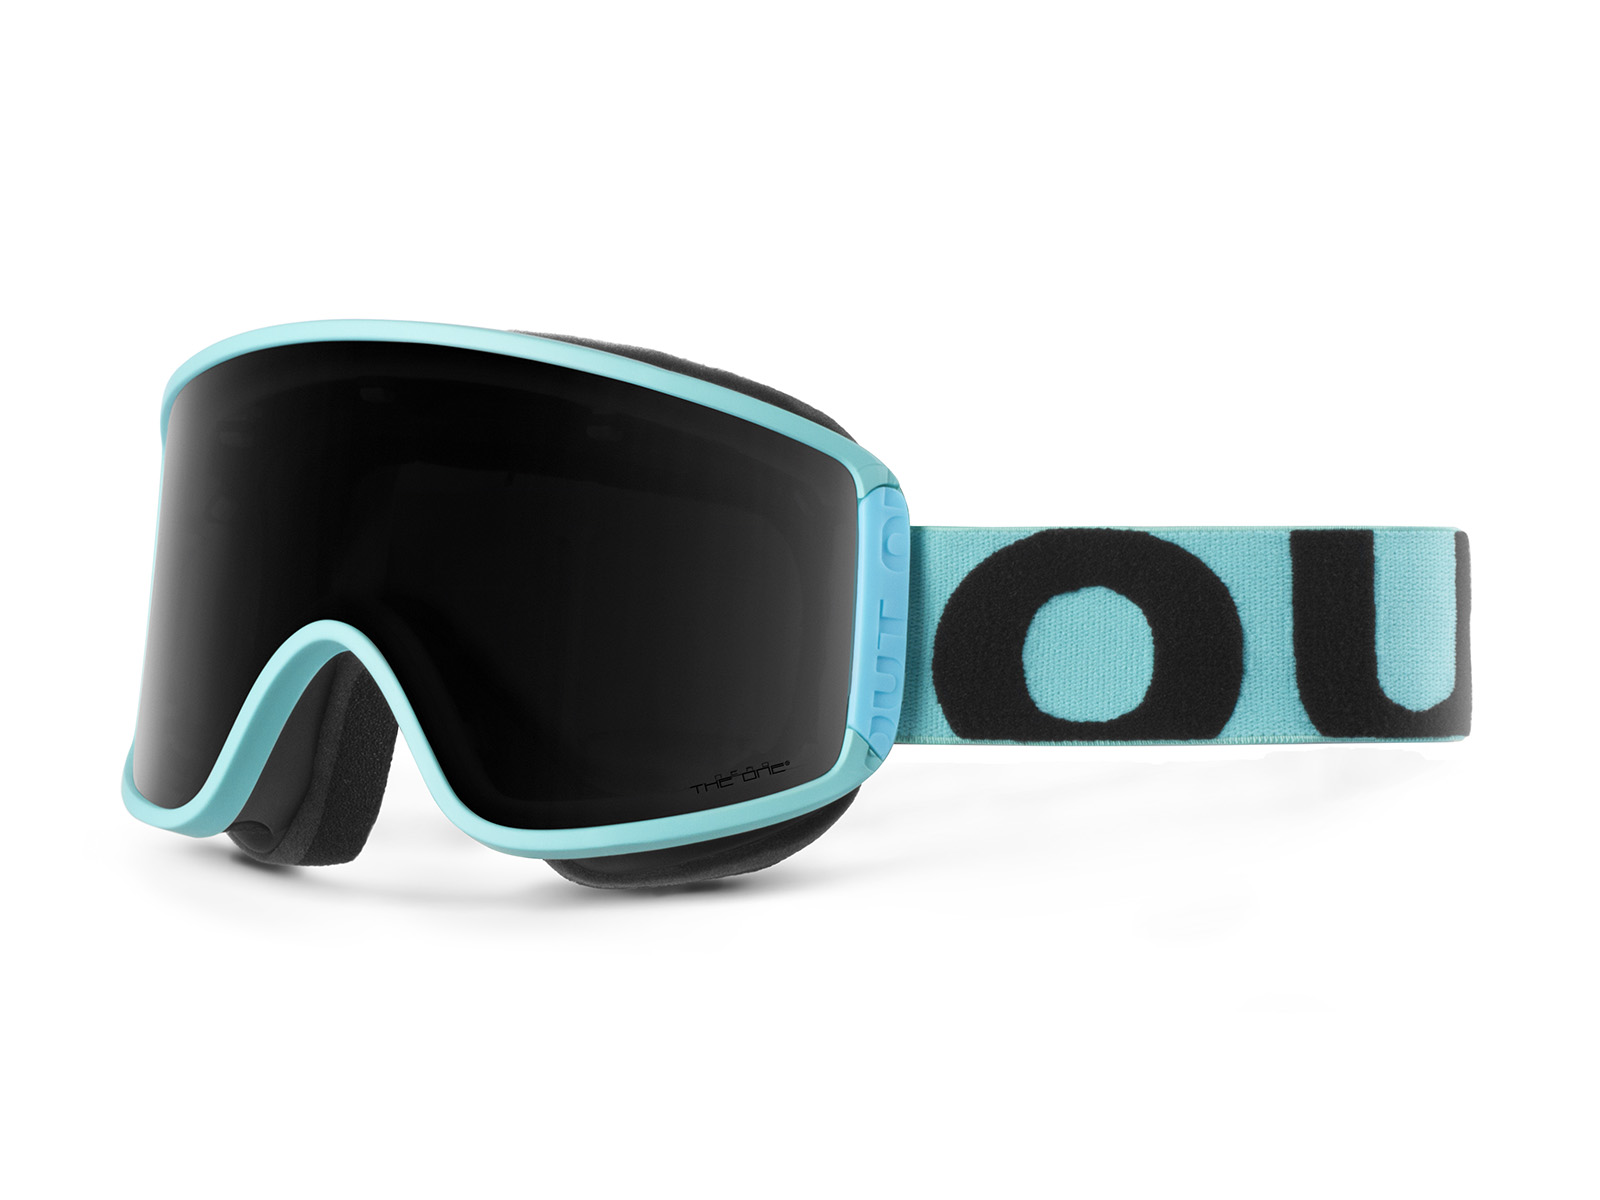 SHIFT TURQUOISE THE ONE NERO GOGGLE